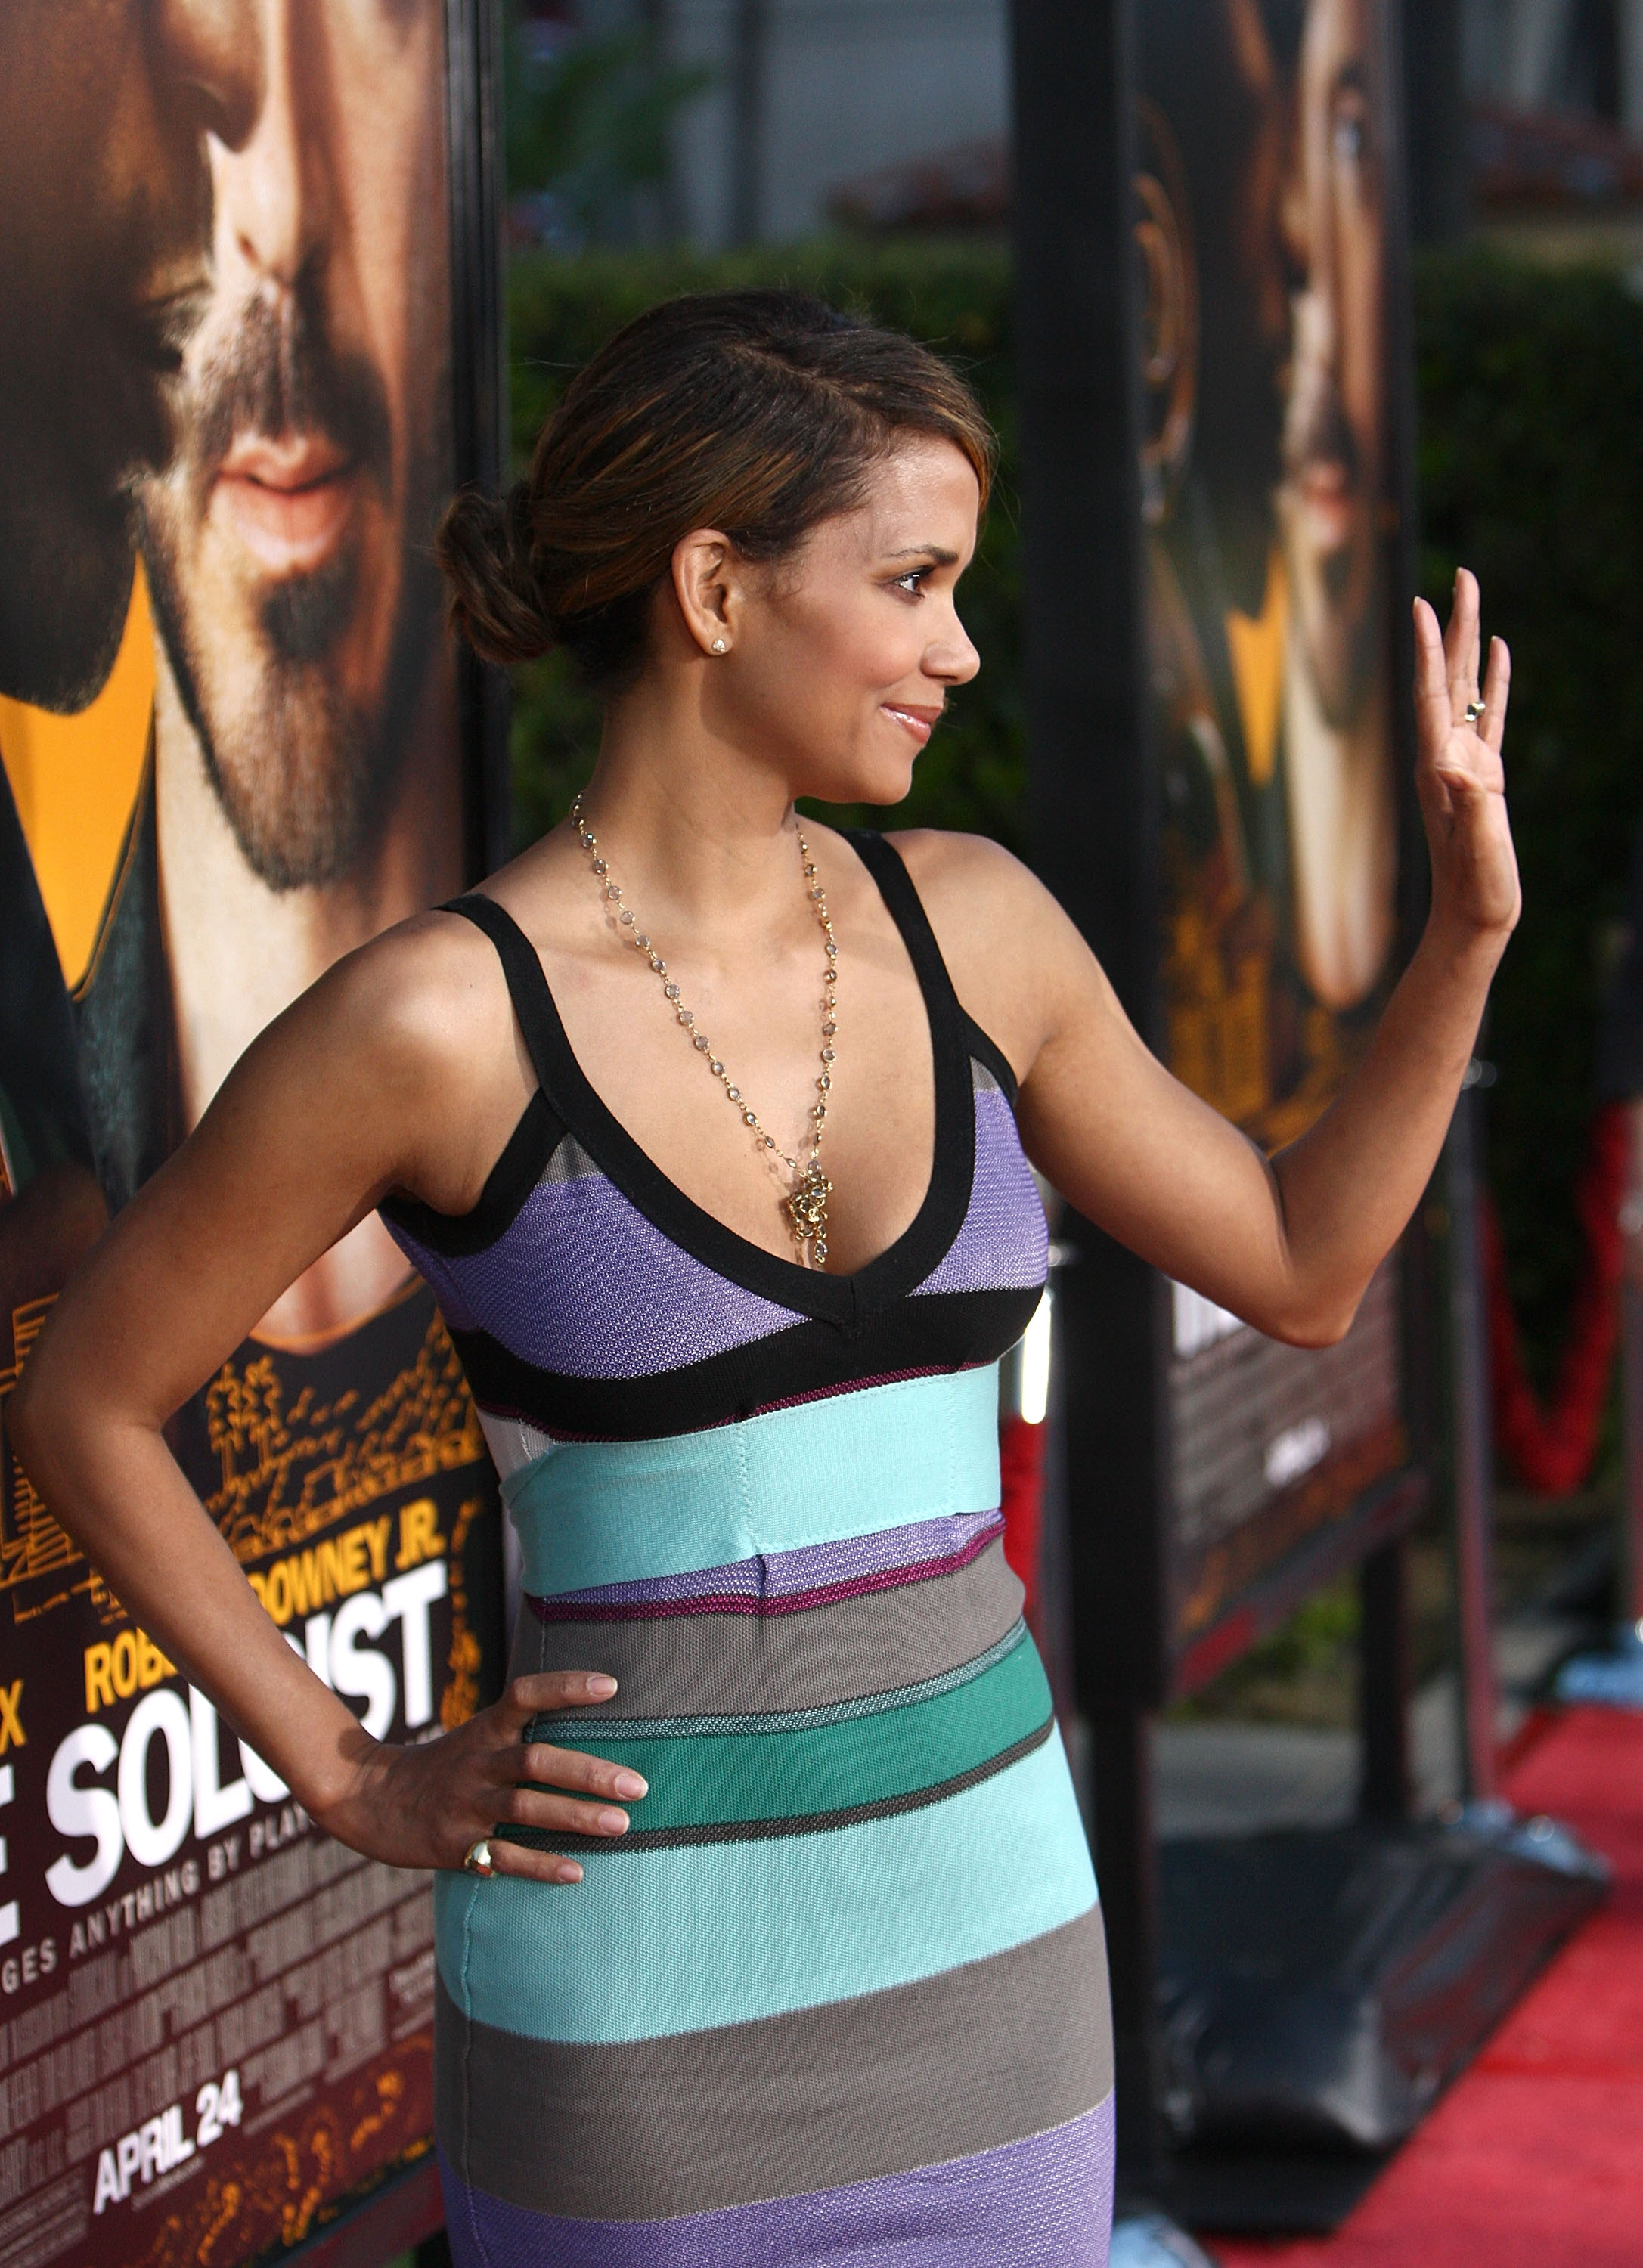 67514_Halle_Berry_The_Soloist_premiere_in_Los_Angeles_10_122_404lo.jpg